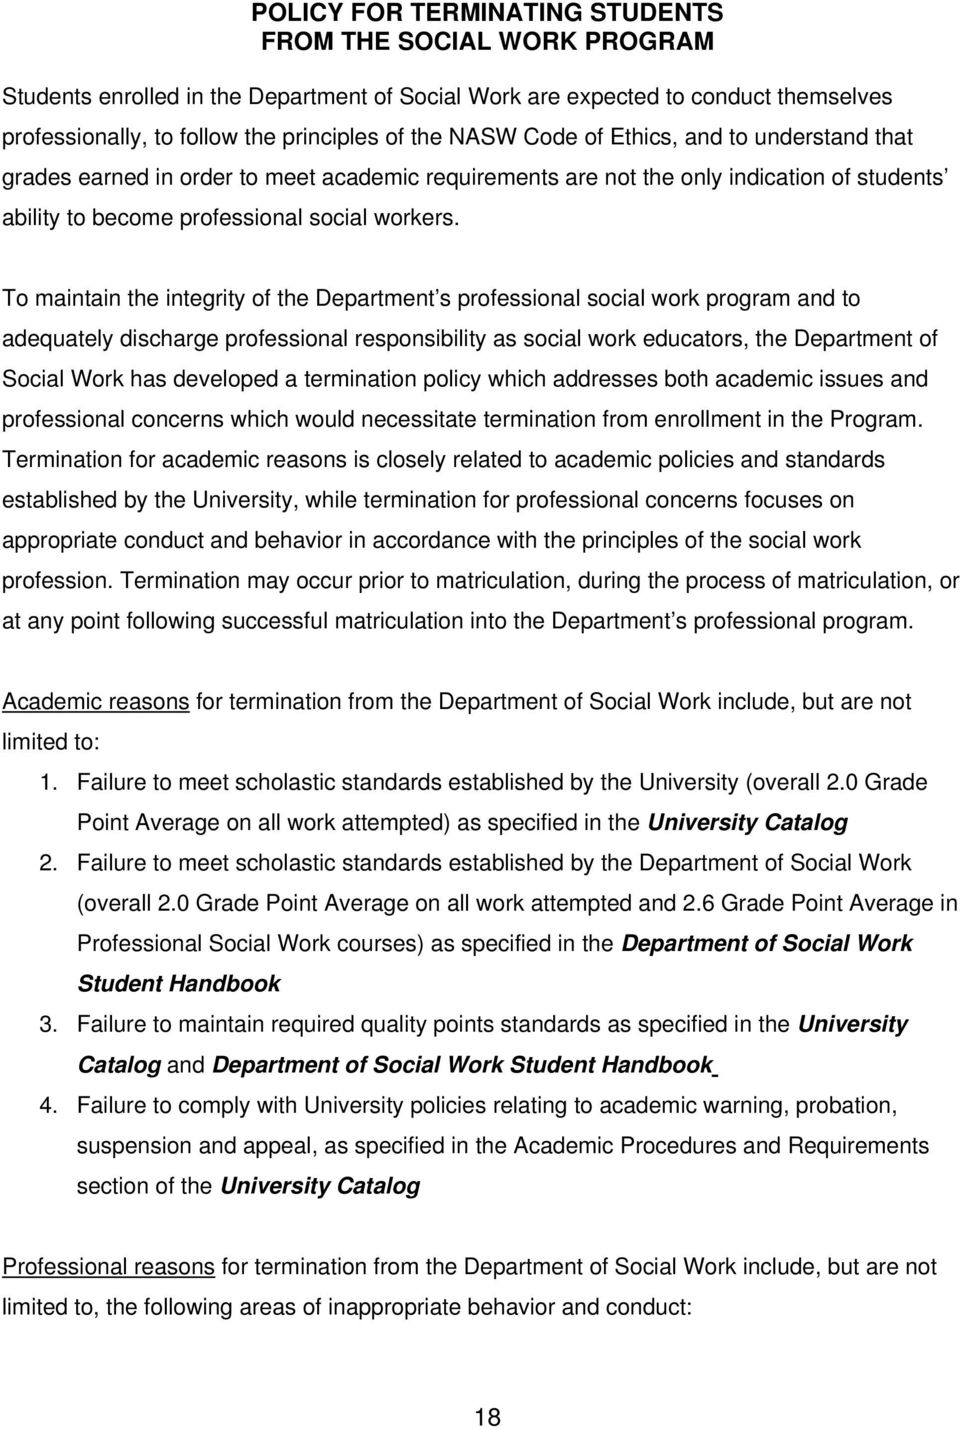 To maintain the integrity of the Department s professional social work program and to adequately discharge professional responsibility as social work educators, the Department of Social Work has